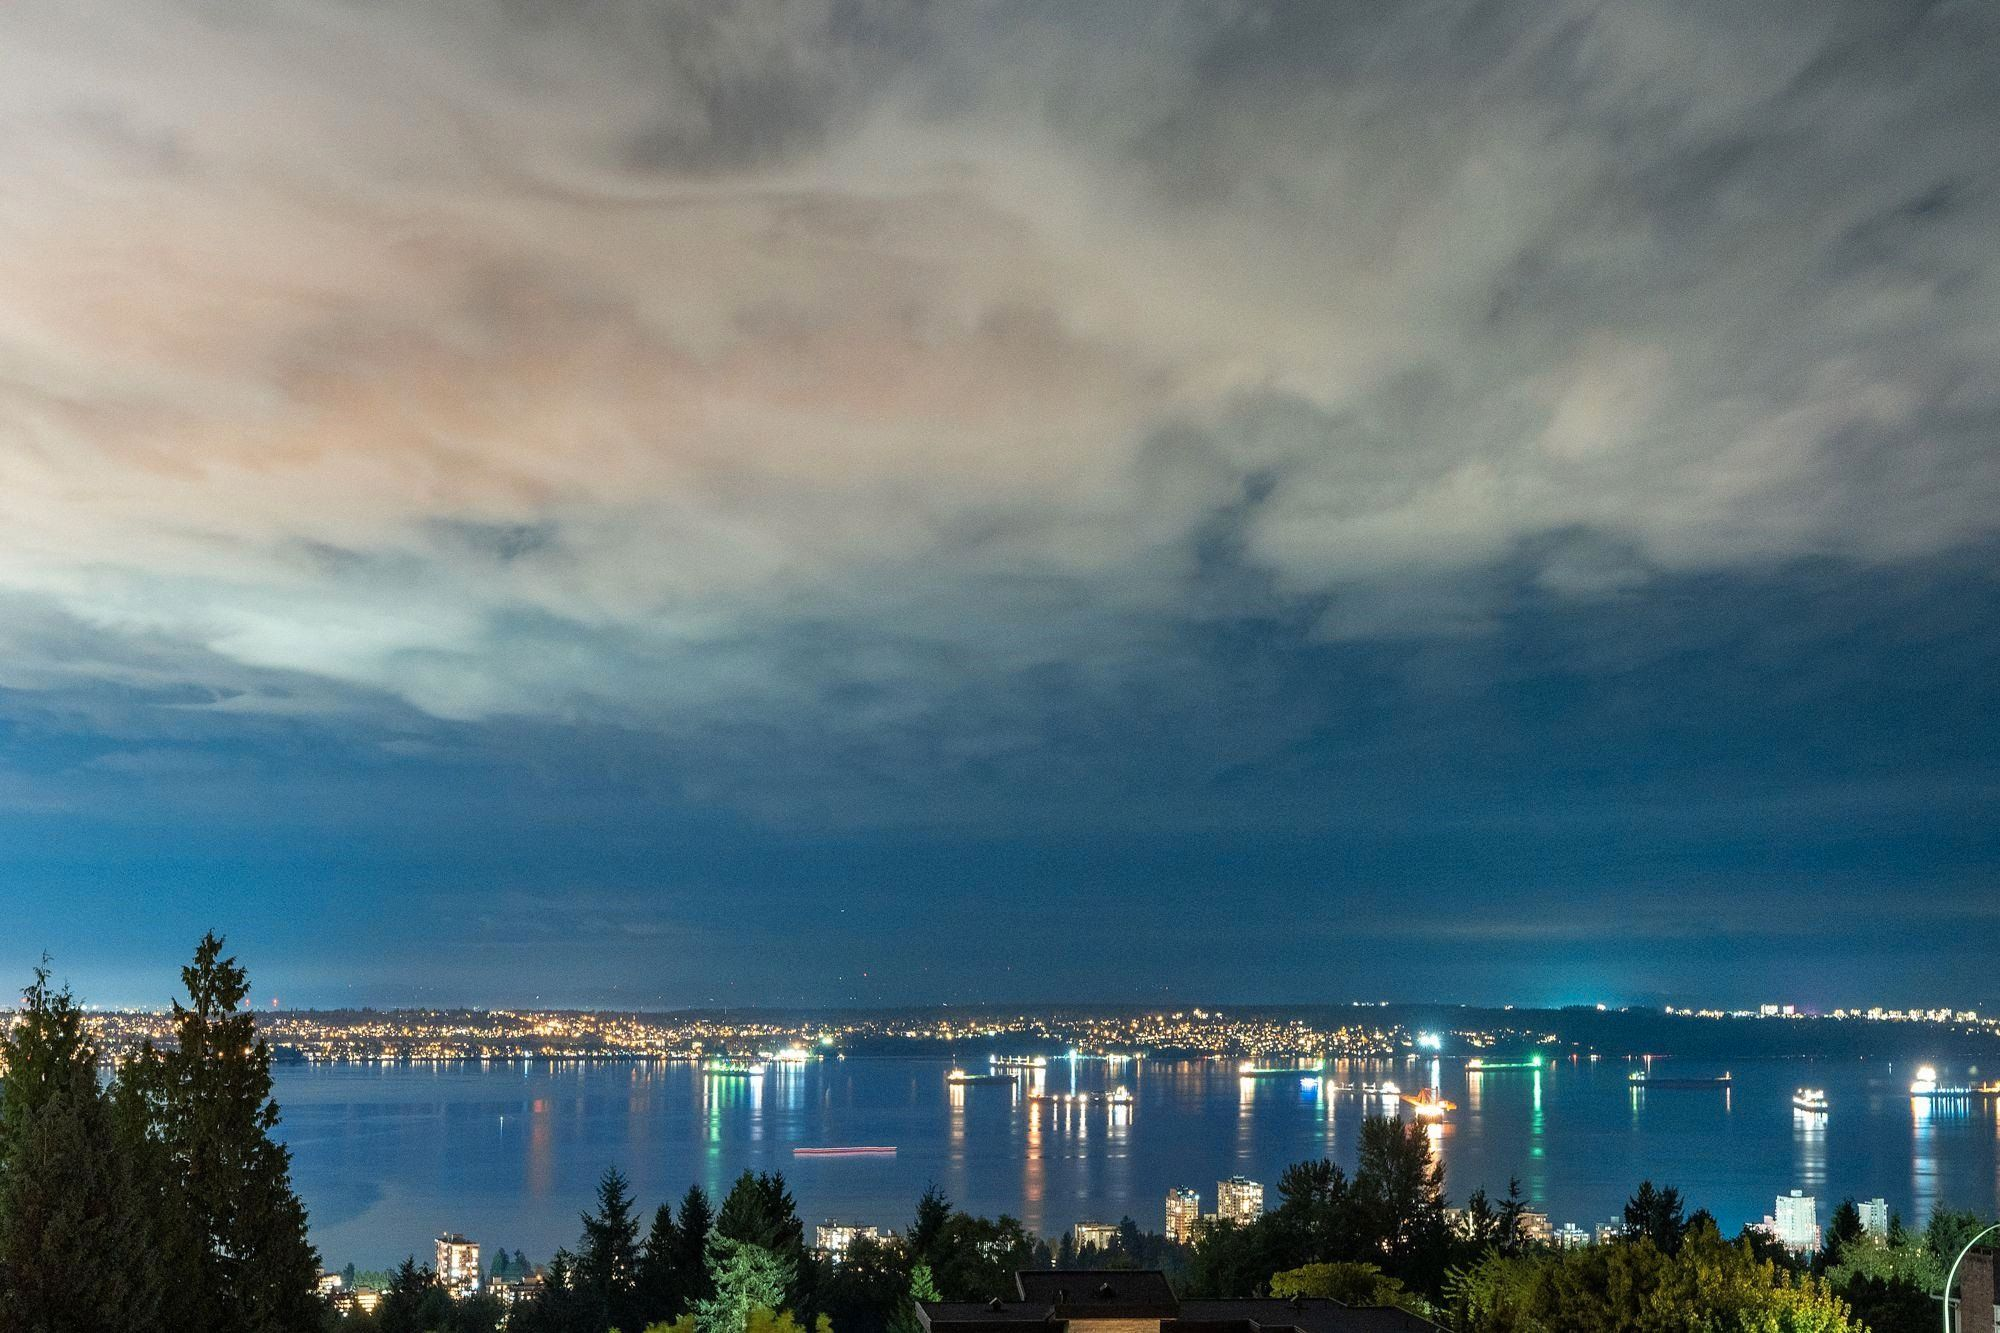 Main Photo: 1335 CHARTWELL Drive in West Vancouver: Chartwell House for sale : MLS®# R2615324